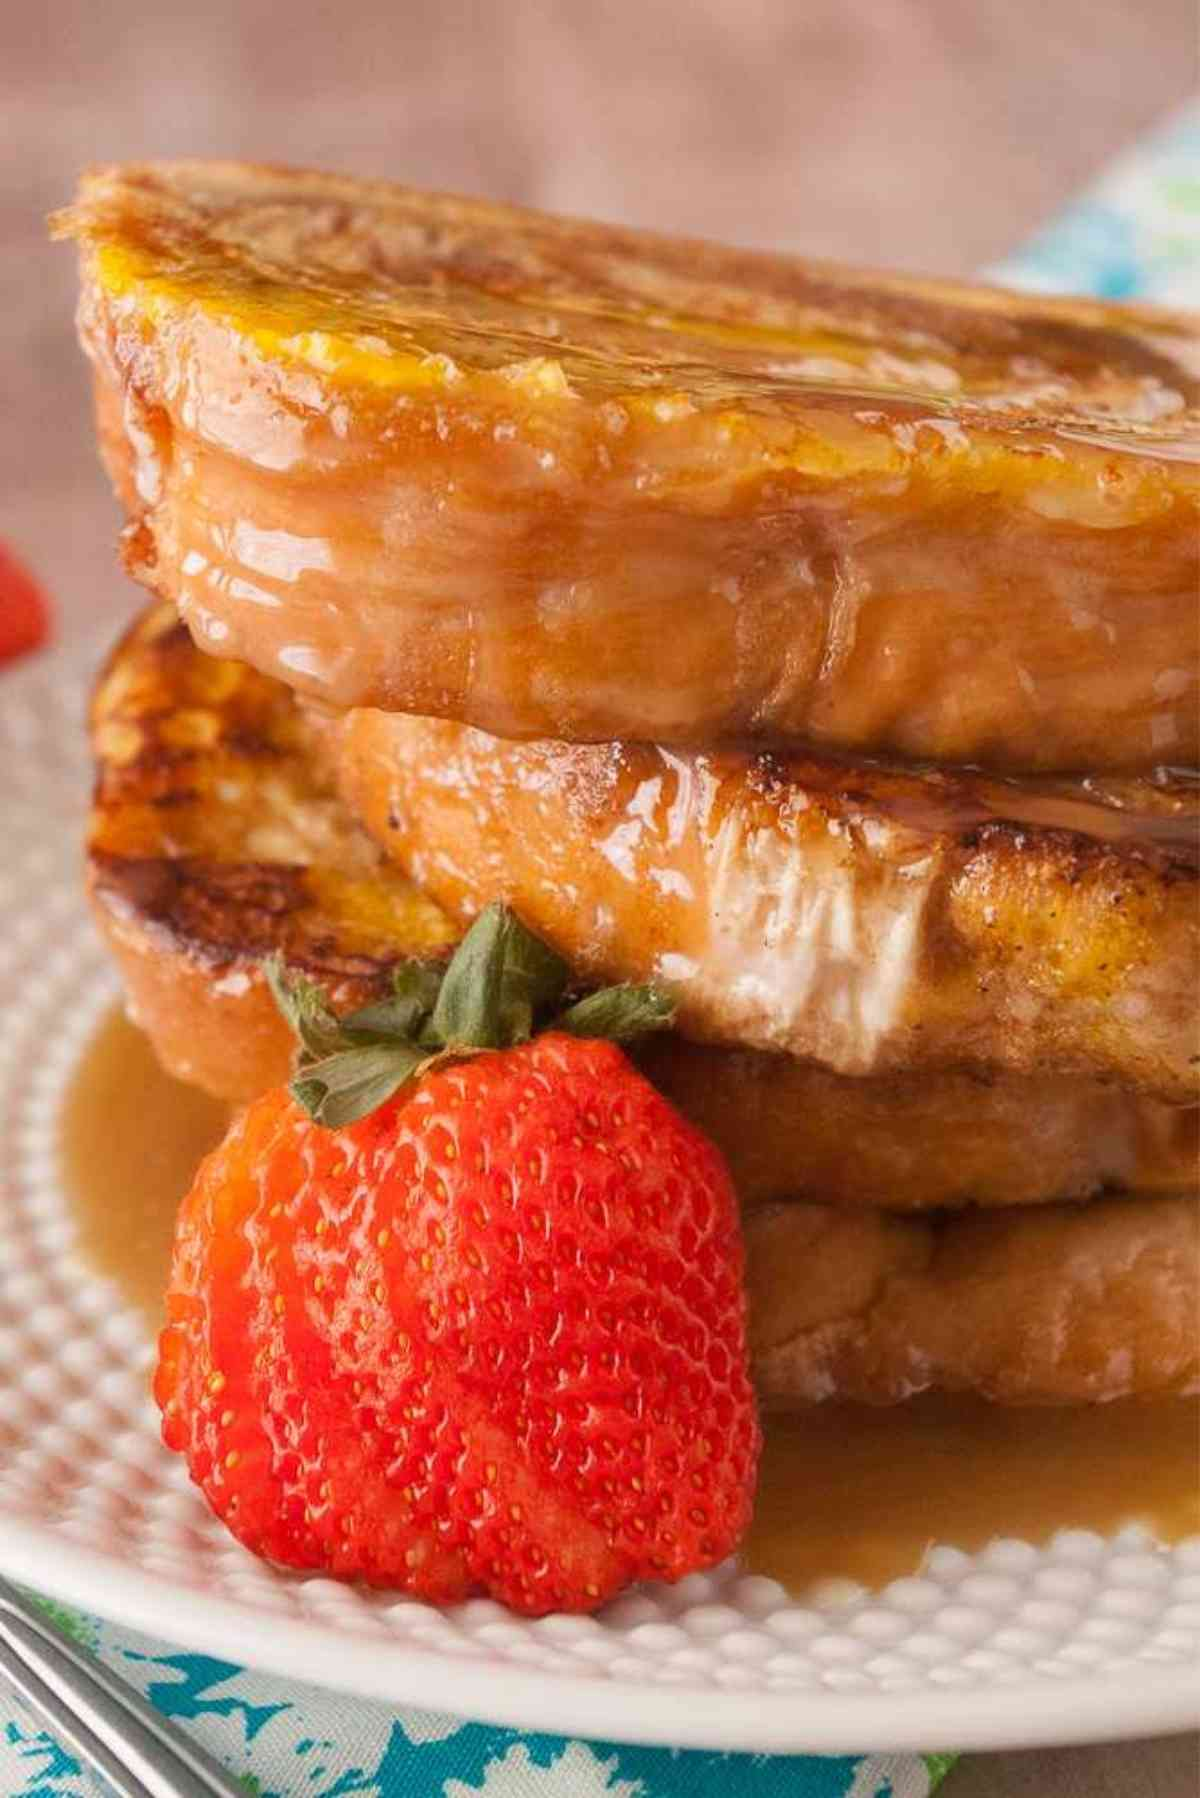 Stack of hot cinnamon swirl french toast with caramel syrup.